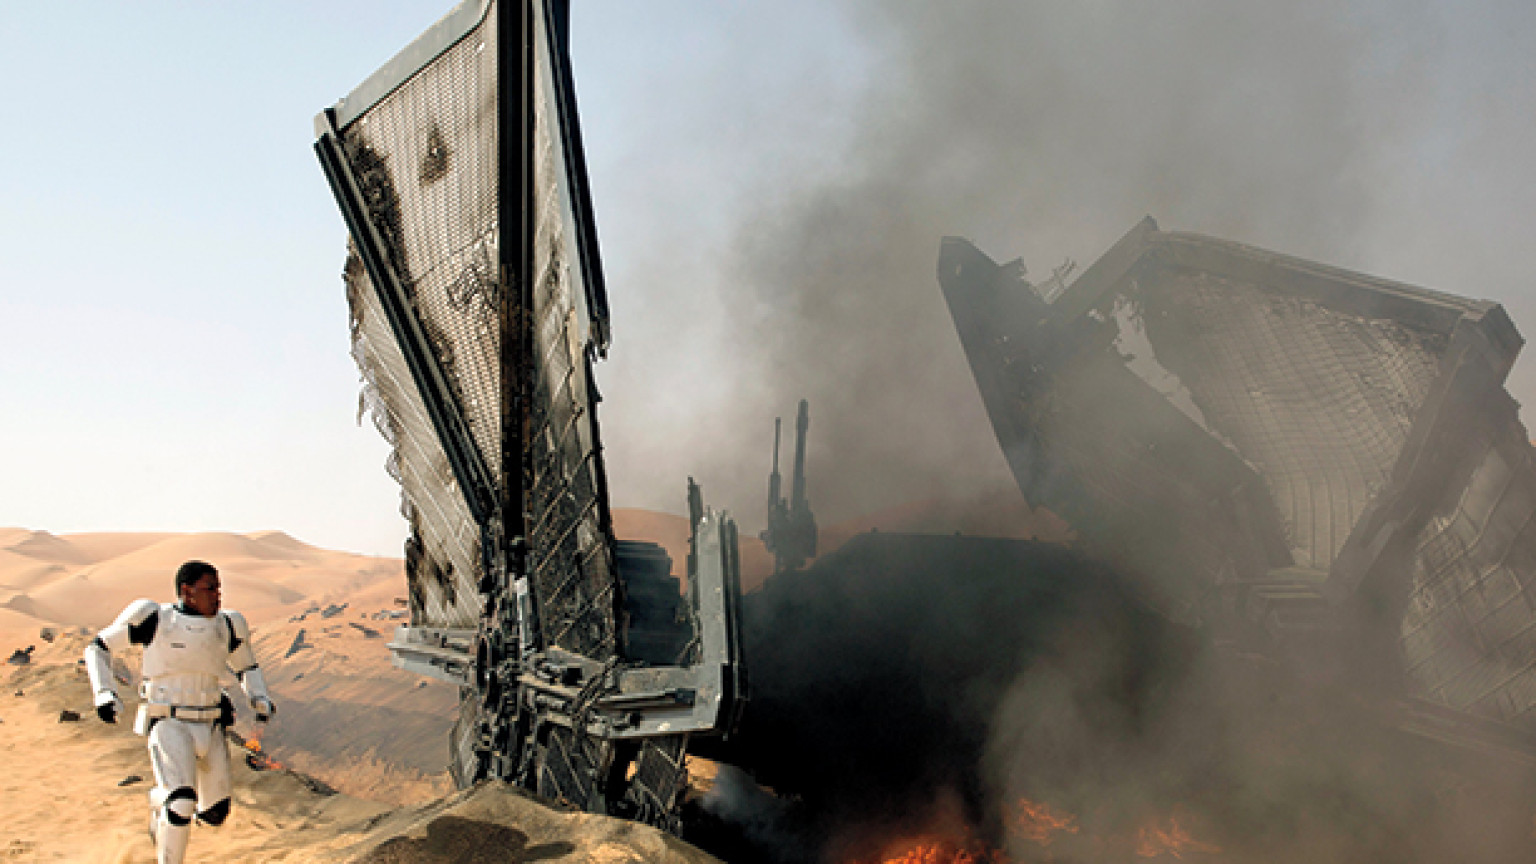 Fallen Tie fighter in The Force Awakens